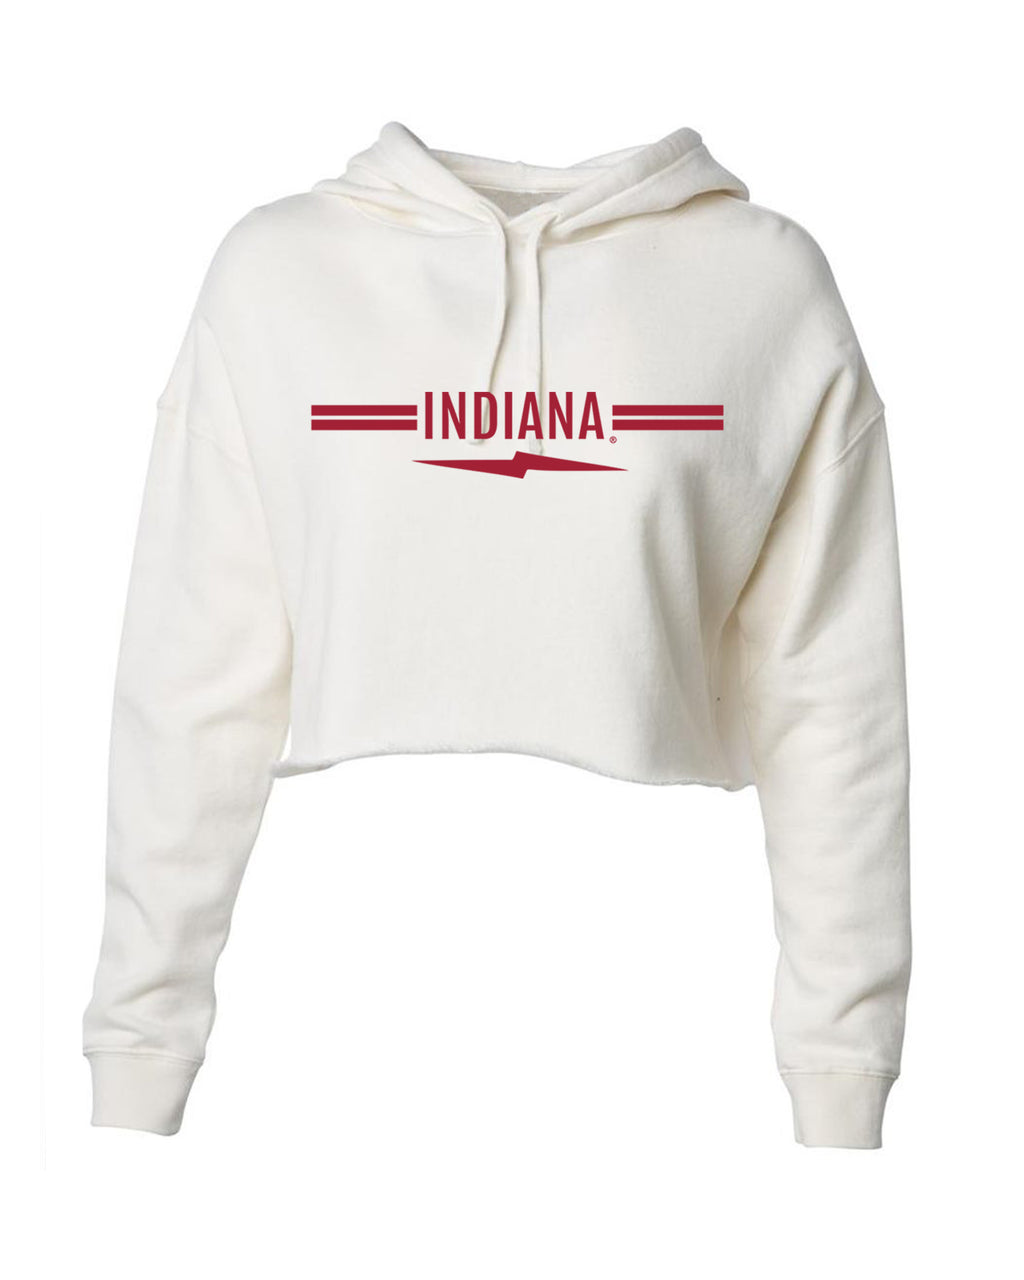 Indiana Lightning Bolt Stripe Cream Sweatshirt